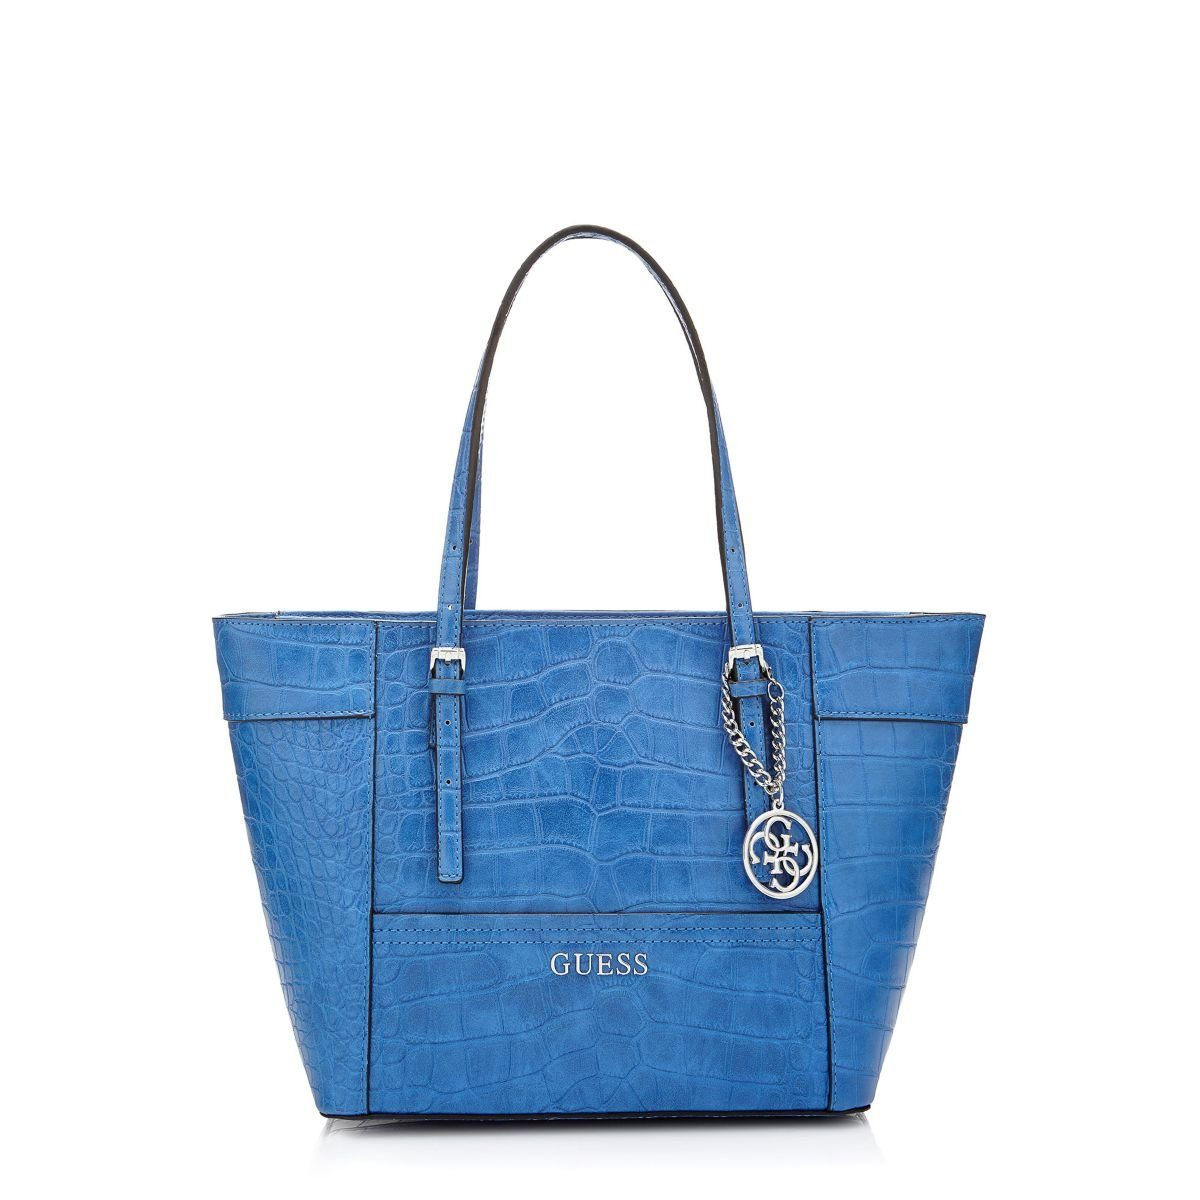 Guess KLEINER SHOPPER DELANEY KROKO-OPTIK